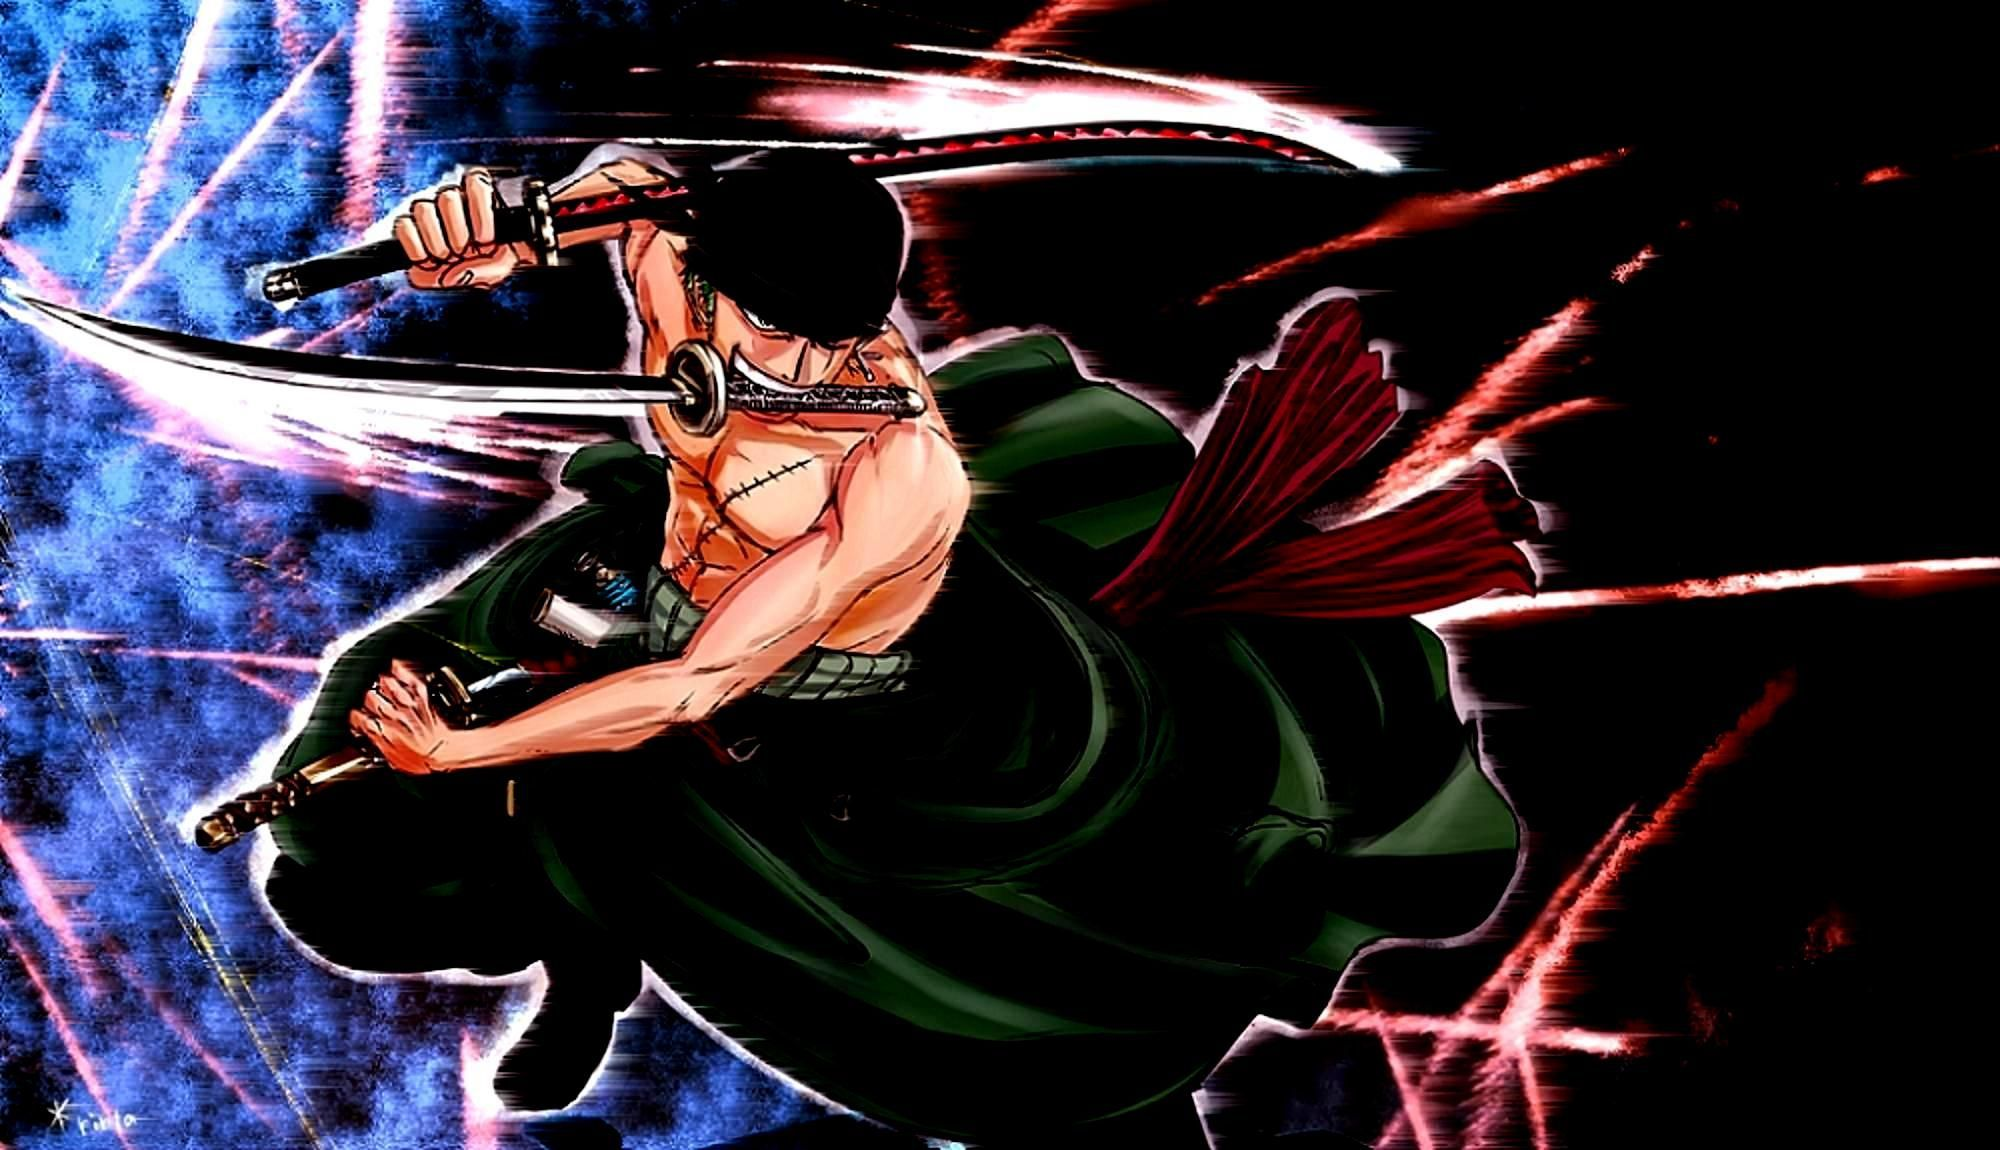 2000x1150 New One Piece Zoro Wallpaper Hd Desktop | animewallpaperjapan